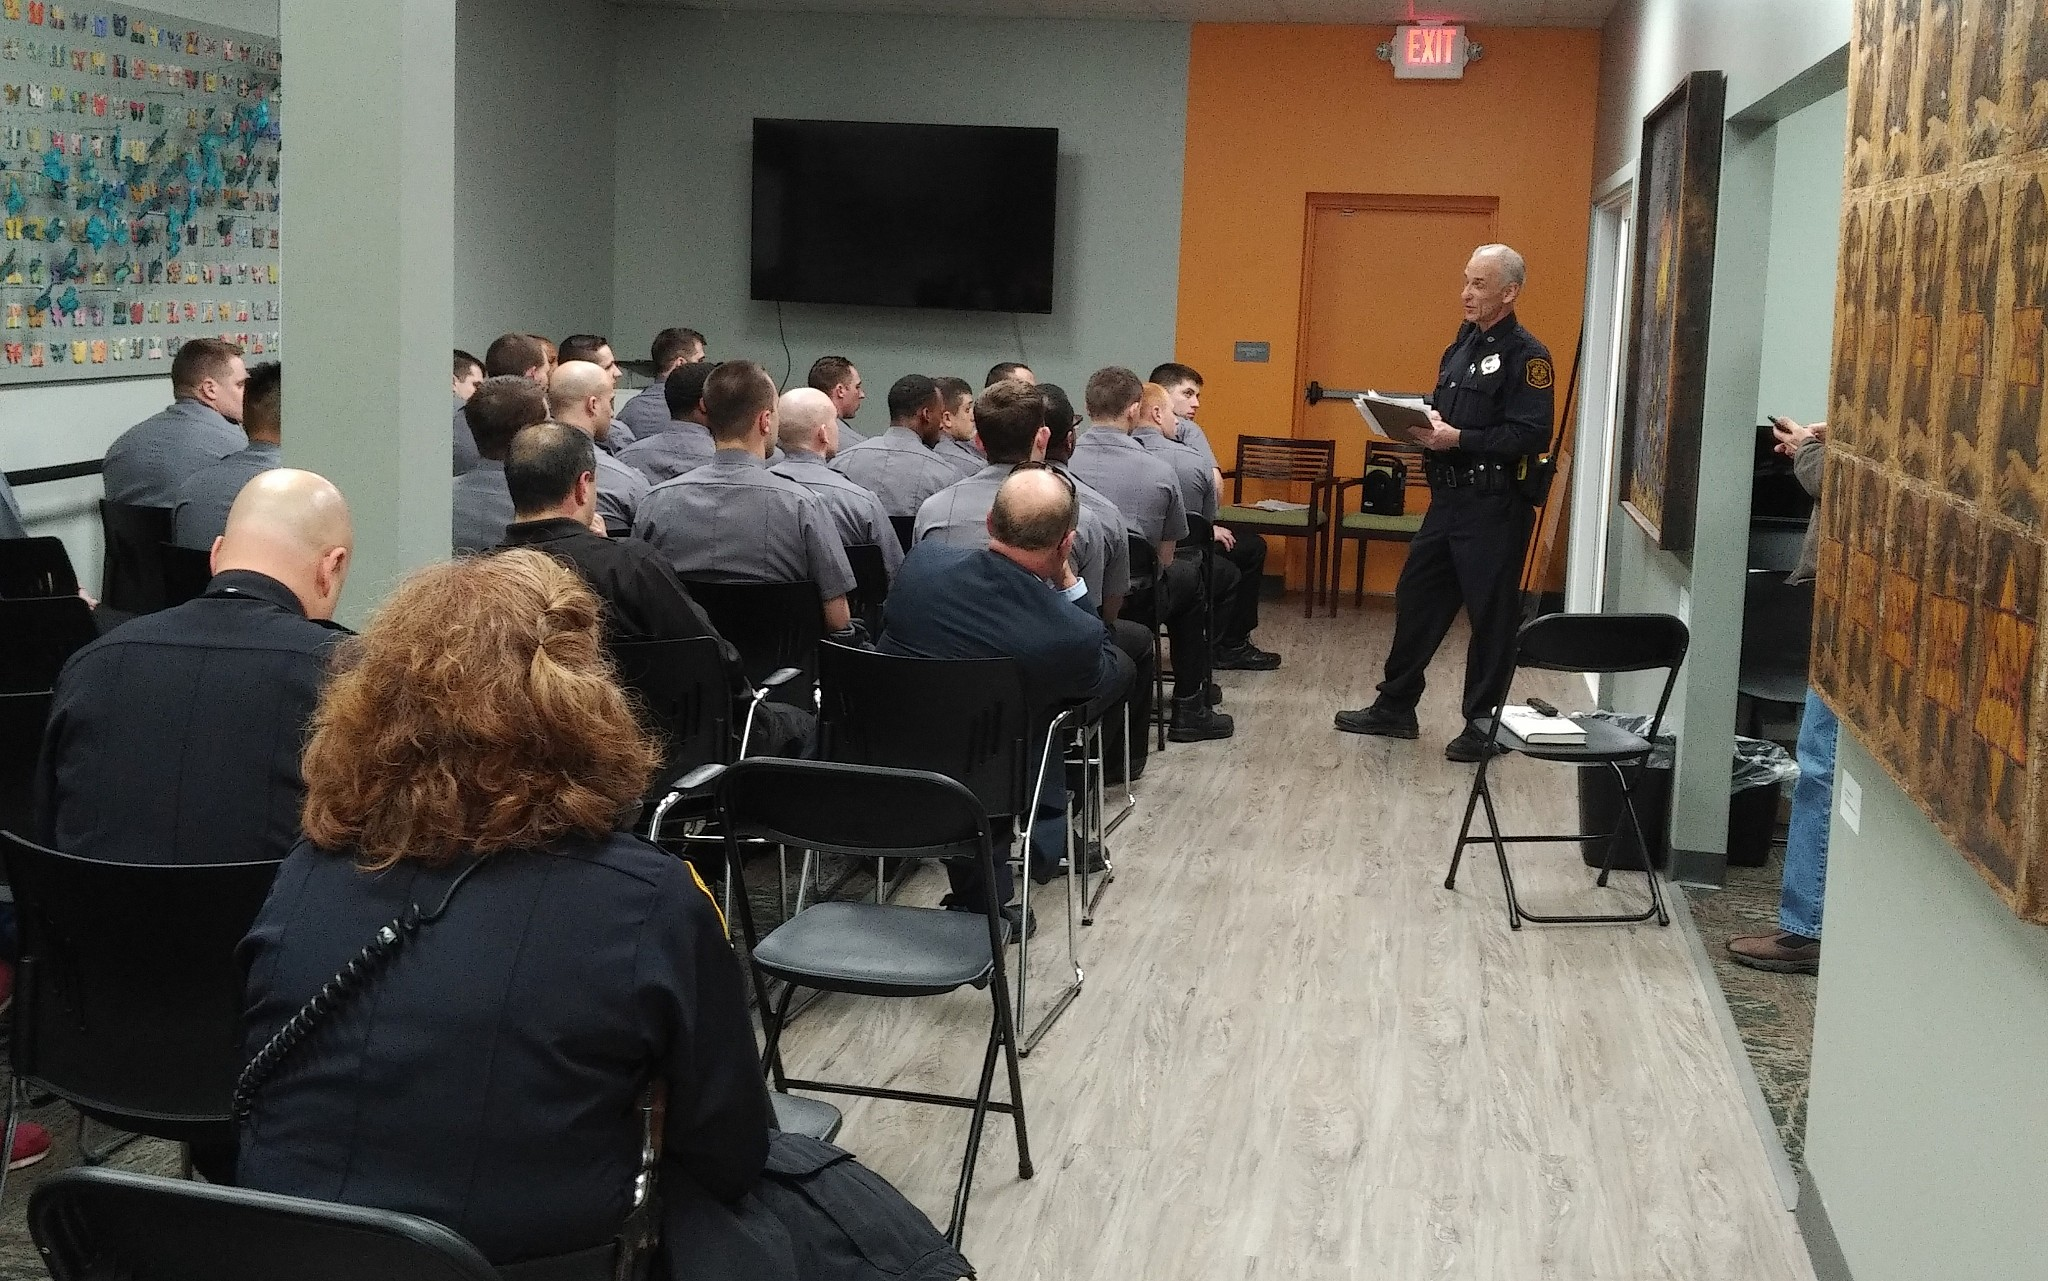 Officer David Shifren leads a discussion with recruits. (Photo by Adam  Reinherz)